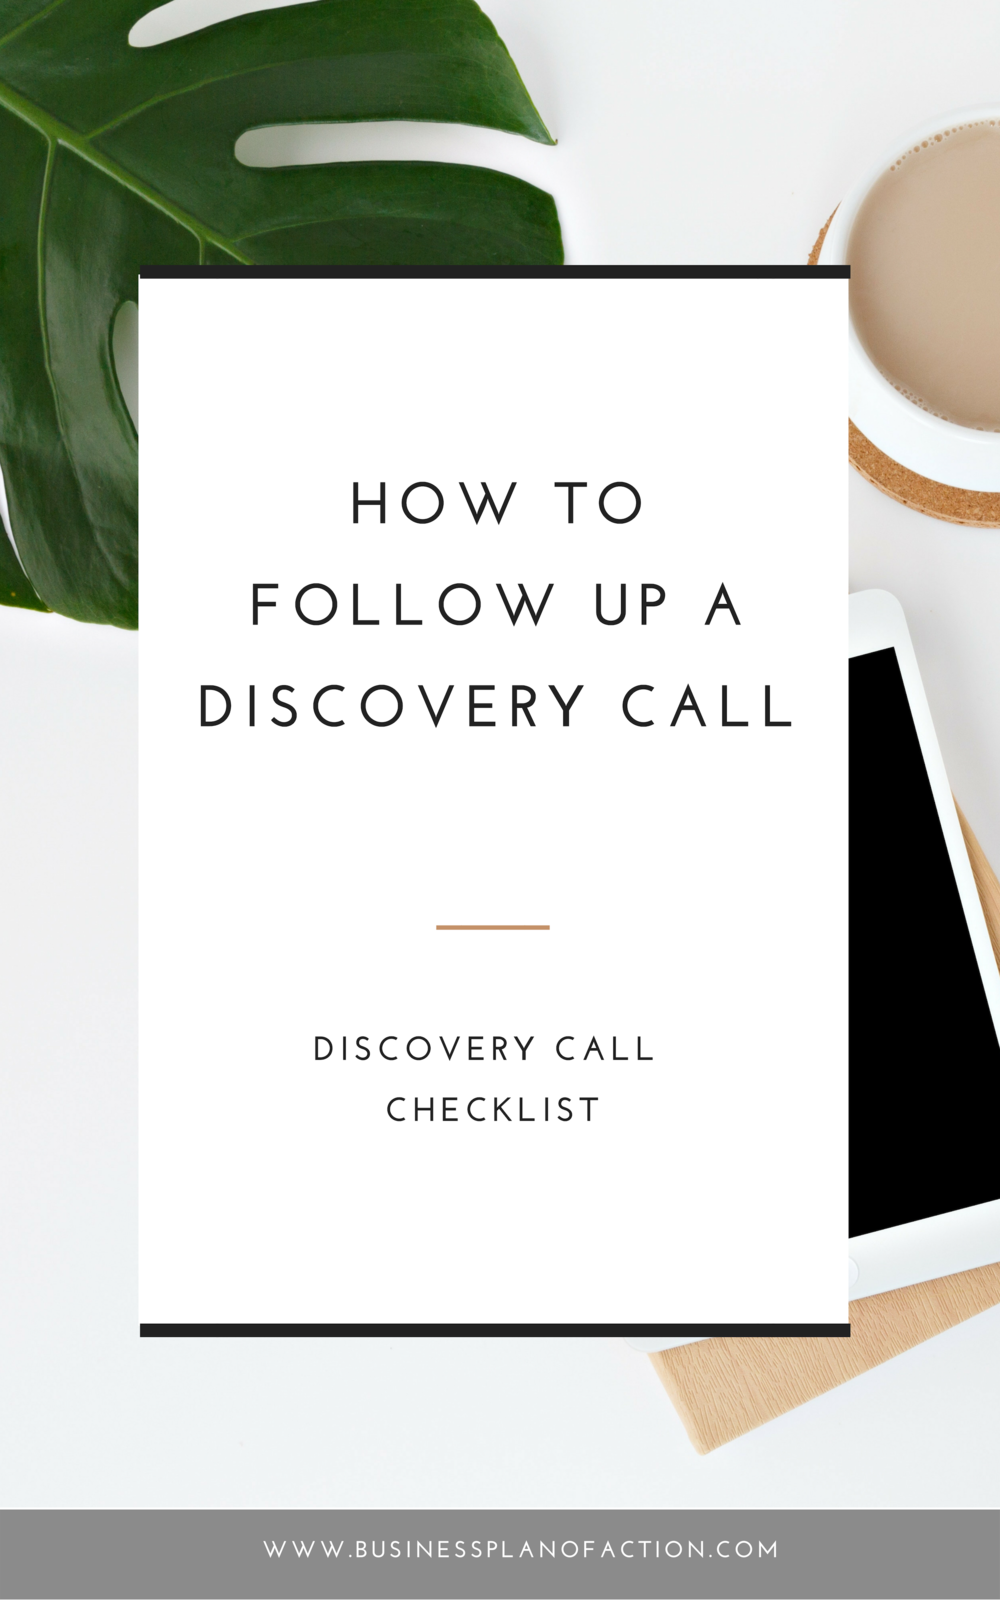 In today's episode I share three steps to following up with your potential client after a discovery call. Be sure to grab the ultimate marketing tracker I mention by reading more here https://businessplanofaction.com/How-to-Follow-Up-a-Discovery-Call